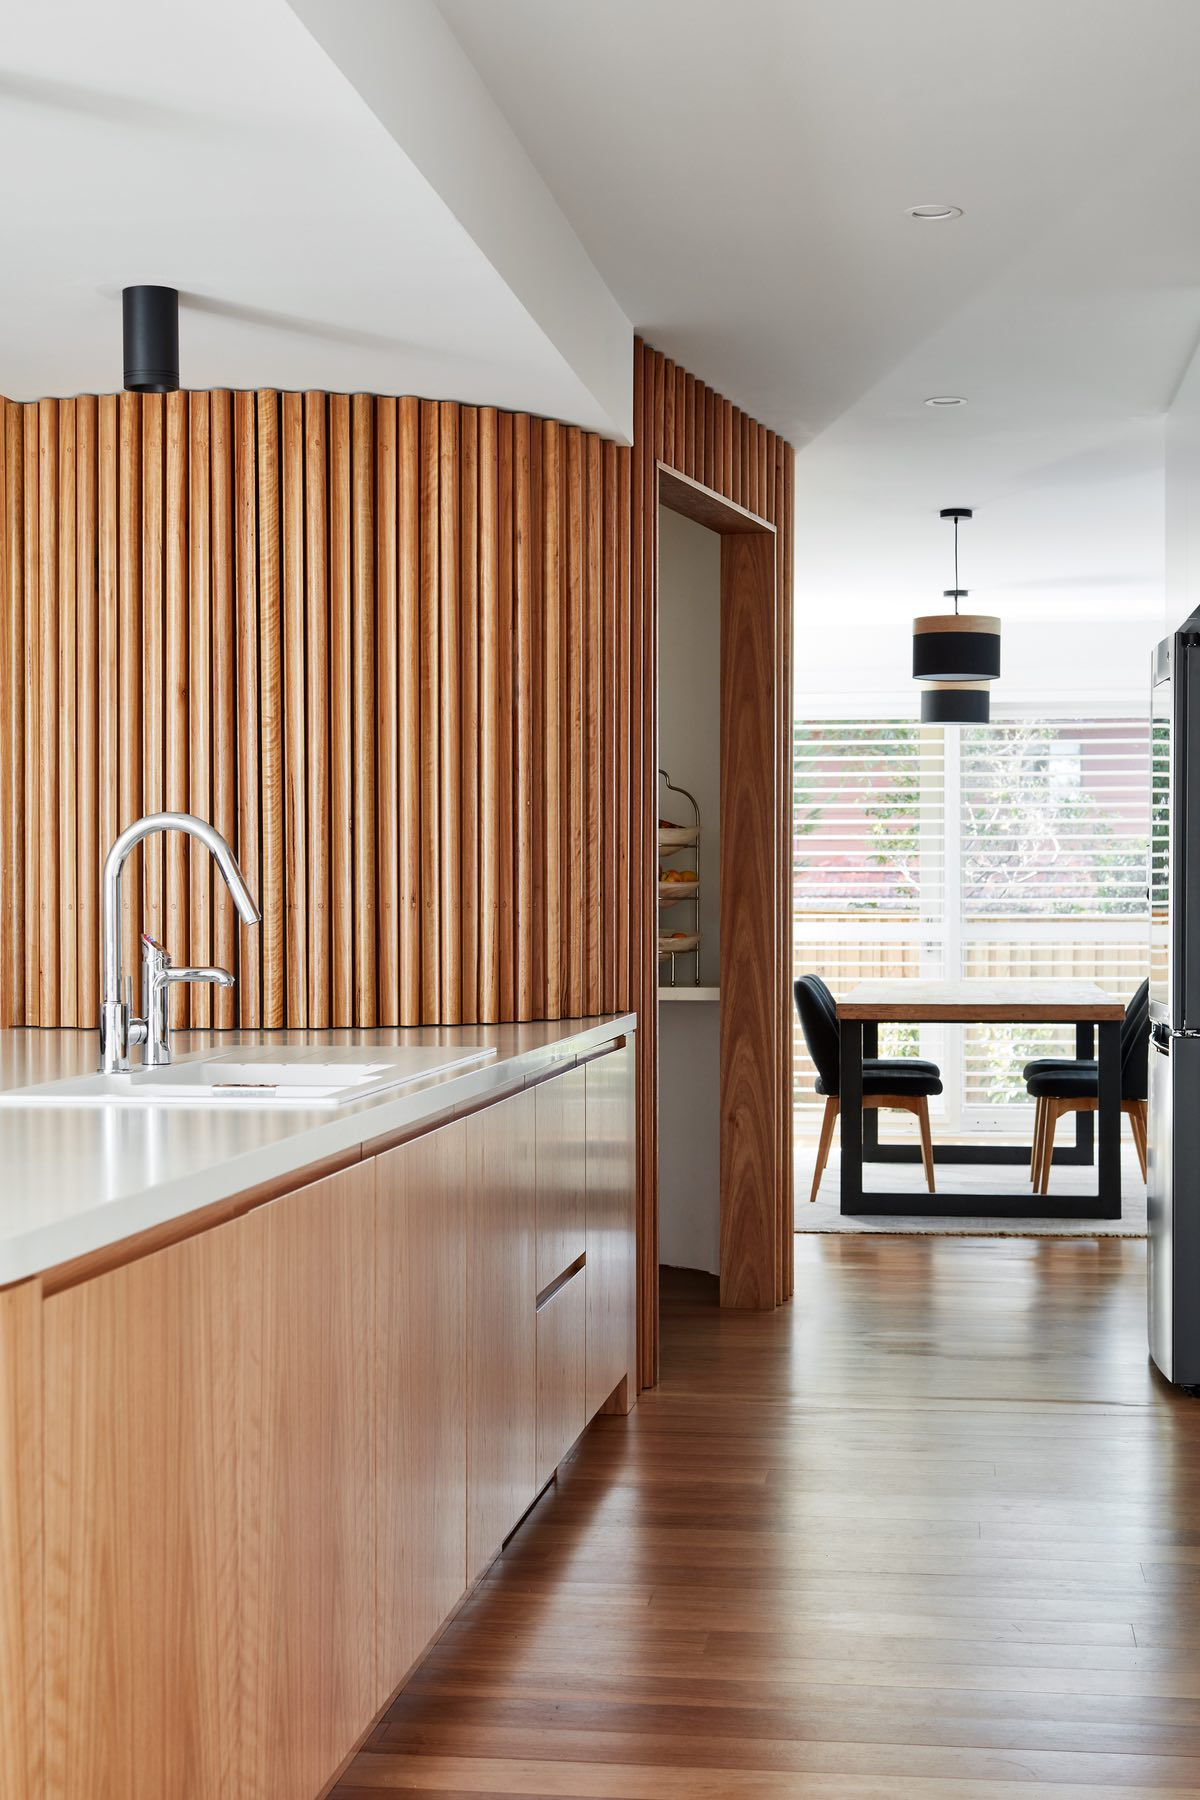 the wooden material of kitchen